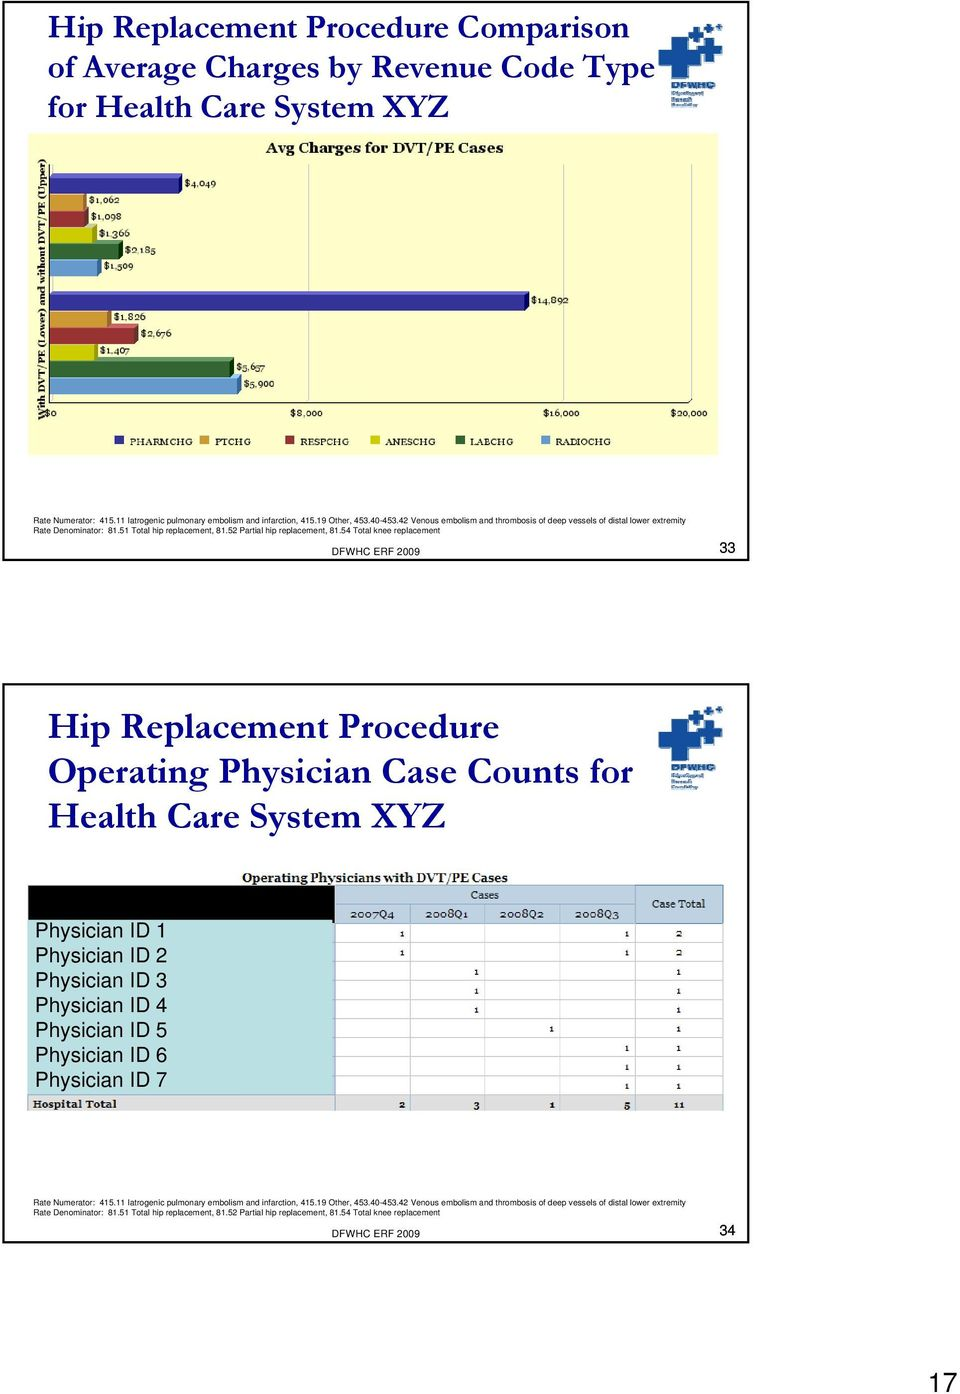 54 Total knee replacement DFWHC ERF 2009 33 Hip Replacement Procedure Operating Physician Case Counts for Health Care System XYZ Physician ID 1 Physician ID 2 Physician ID 3 Physician ID 4 Physician